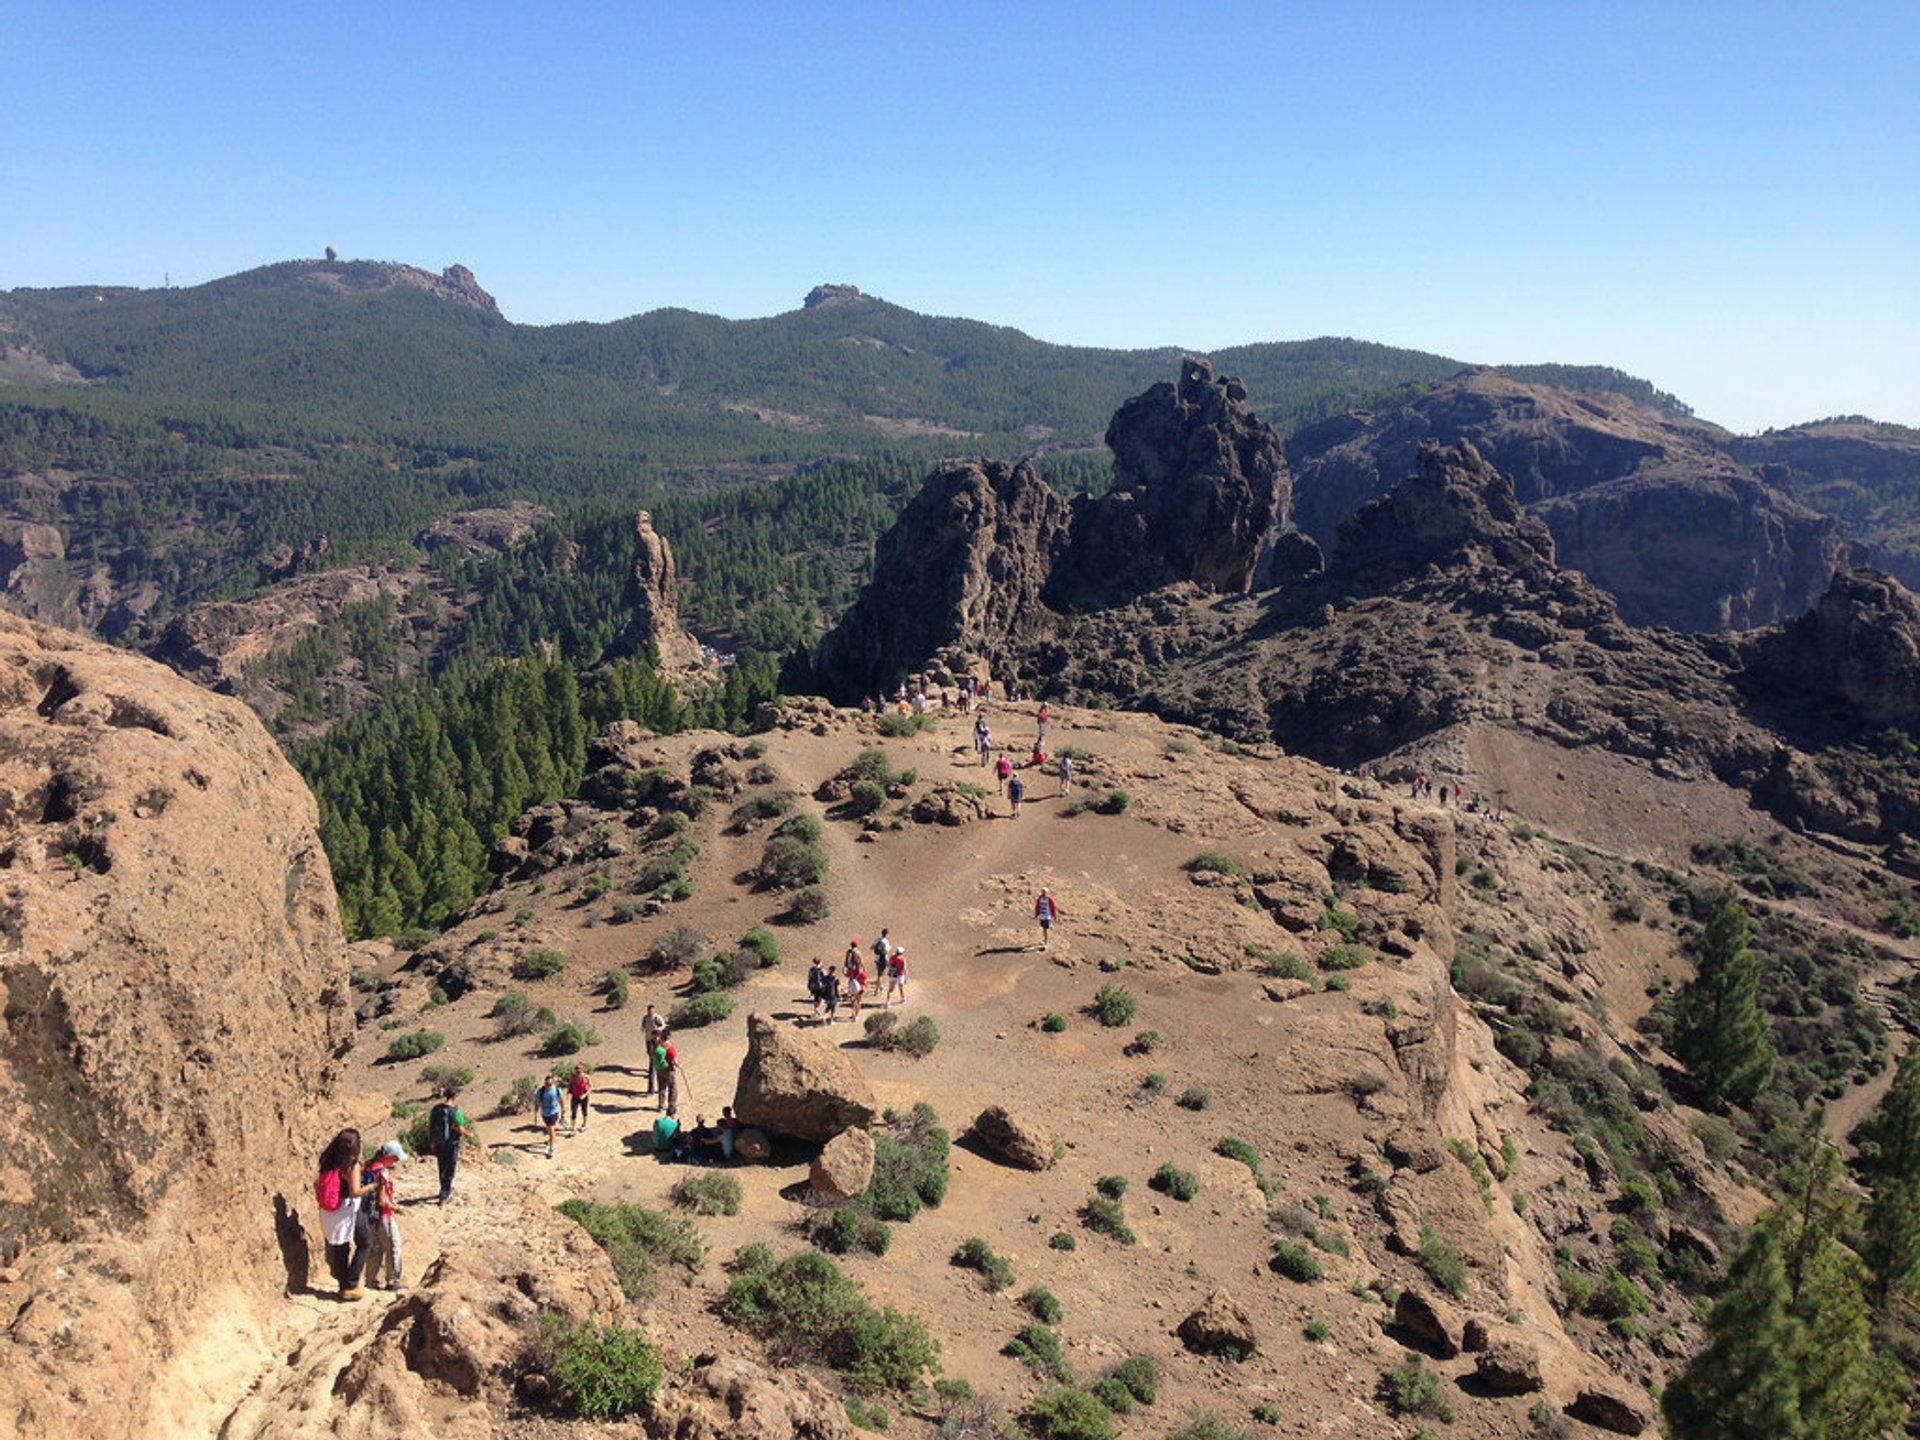 The view from Roque Nublo, Las Palmas, Spain 2020